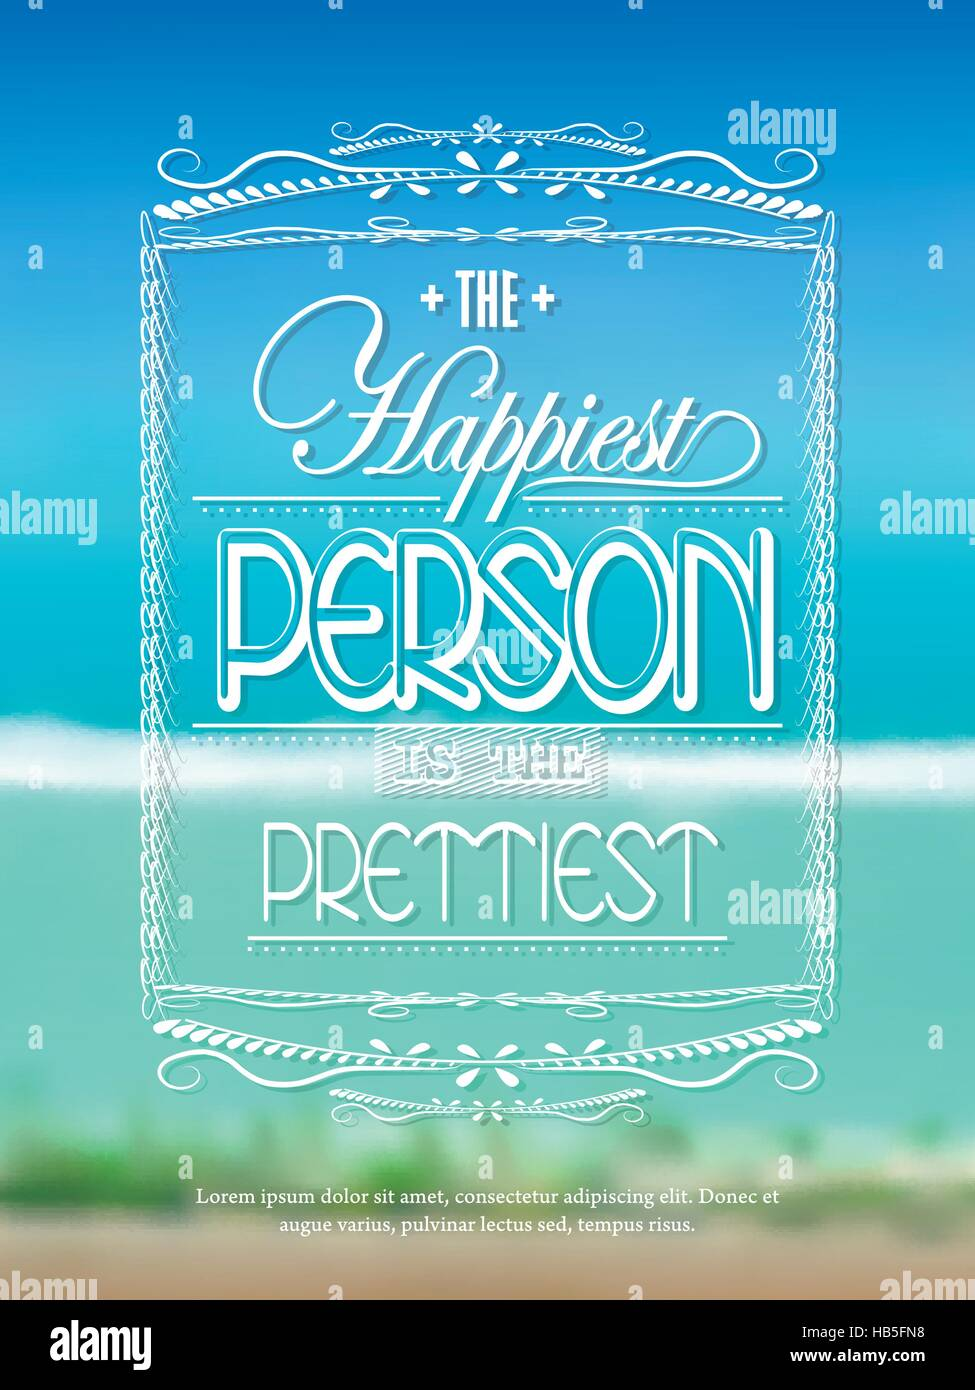 positive life quotes over beautiful blurred background - Stock Vector